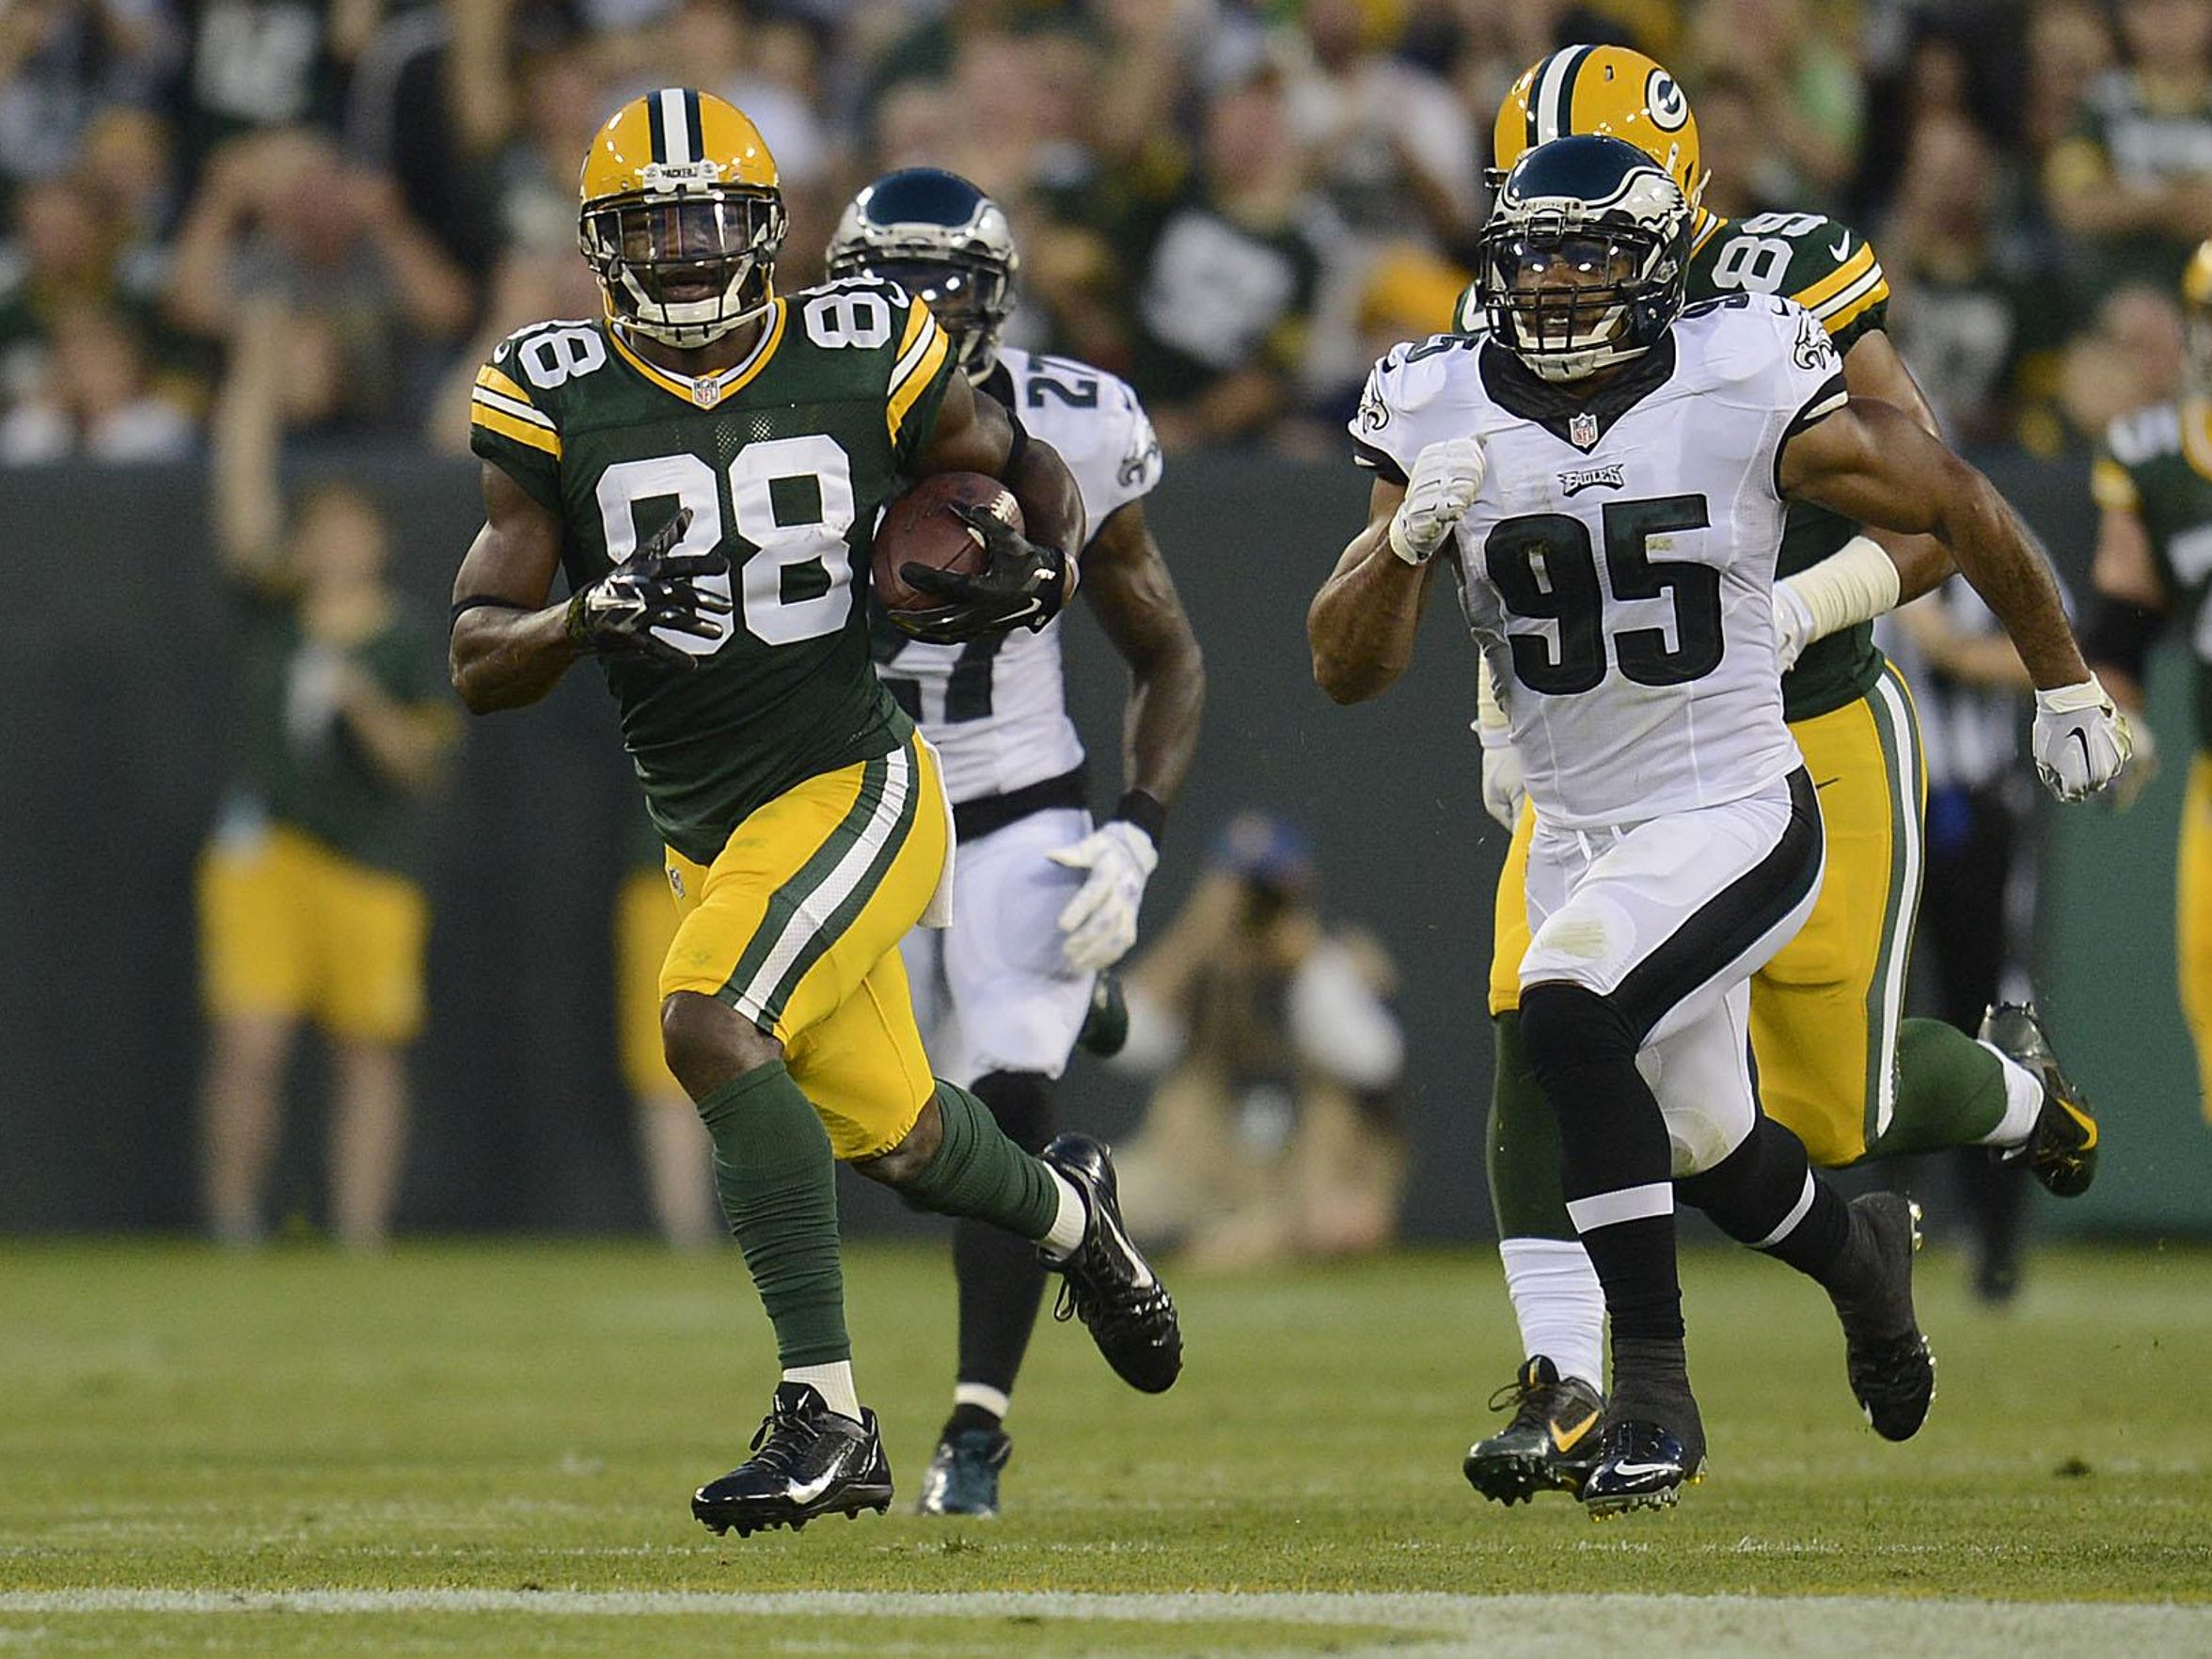 Green Bay Packers receiver Ty Montgomery (88) runs with the ball after making a catch against the Philadelphia Eagles during their preseason game at Lambeau Field.